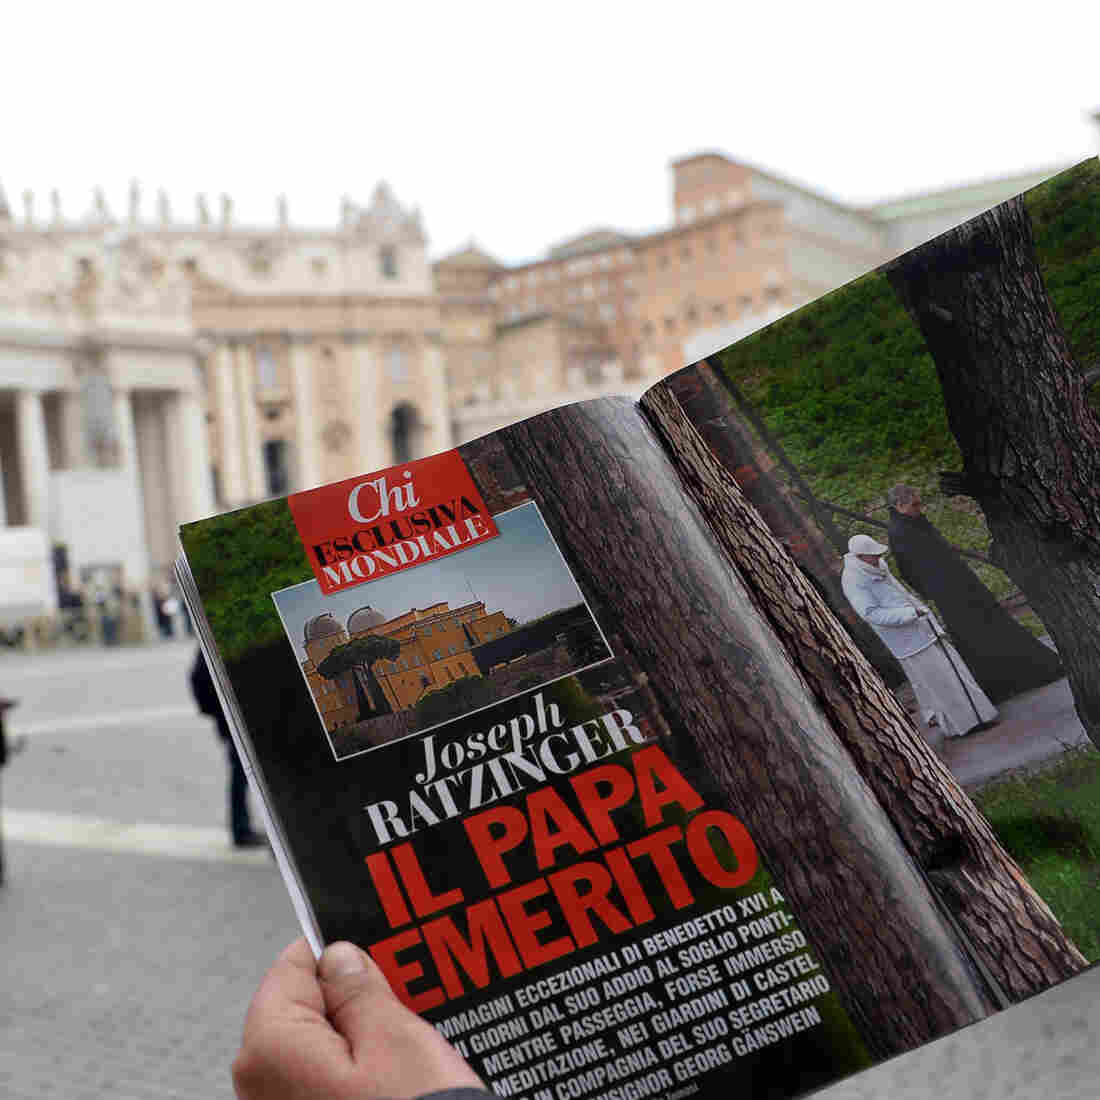 Victims' Advocates Push For Some Cardinals To Be Barred From Papal Conclave